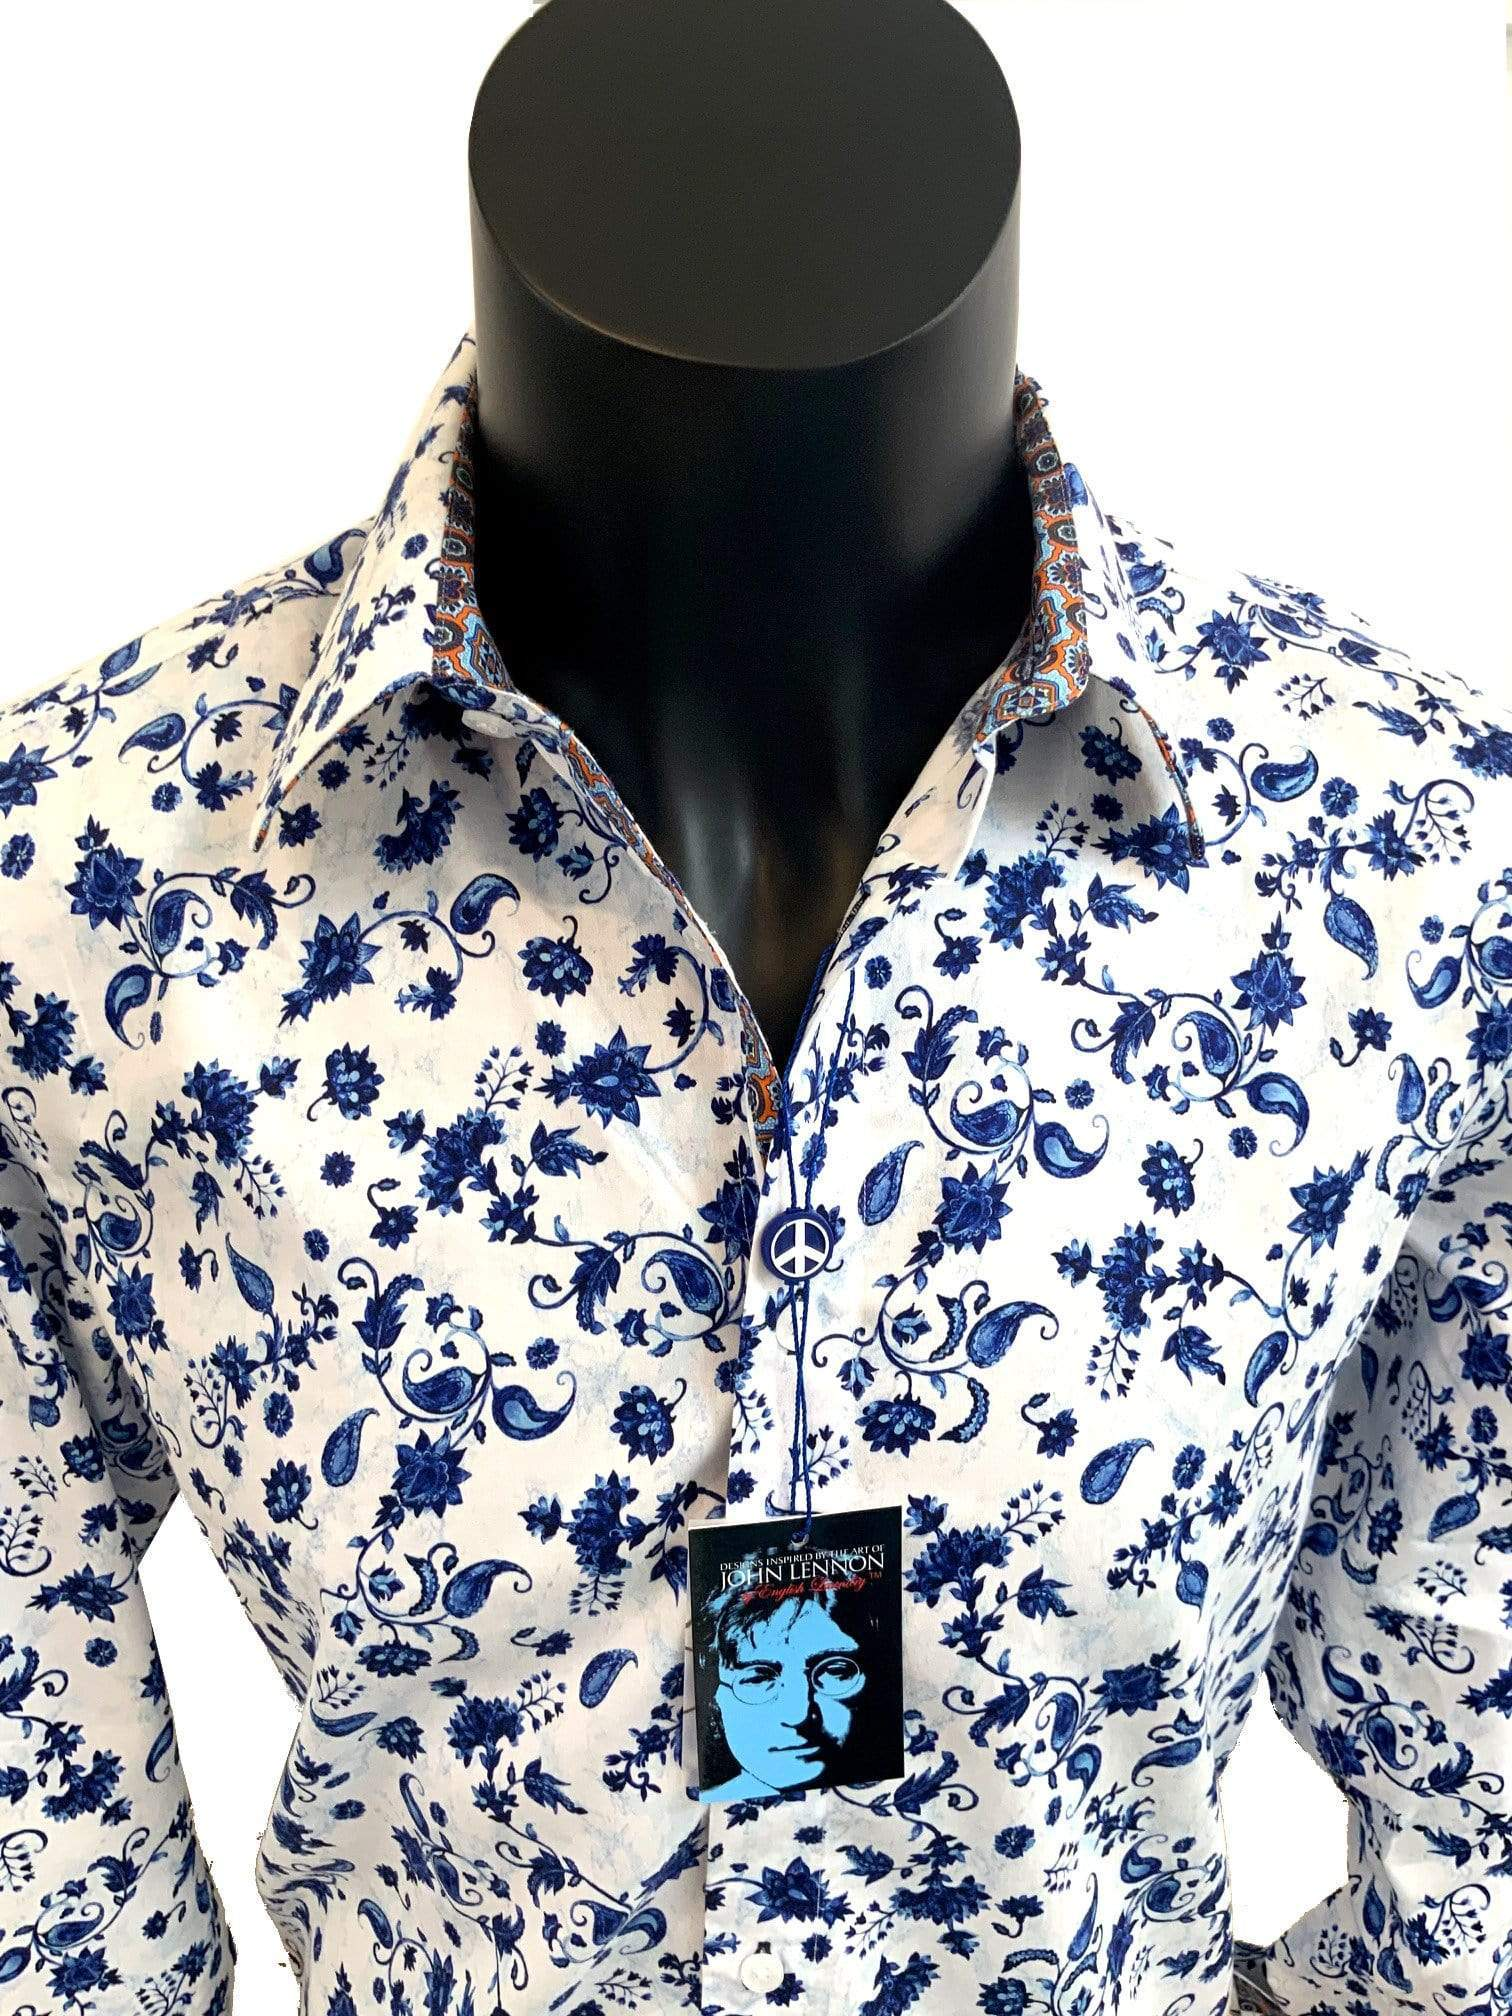 ZACAR SHIRTS ELVIS - John Lennon Shirt - JLW 6053 Long Sleeve